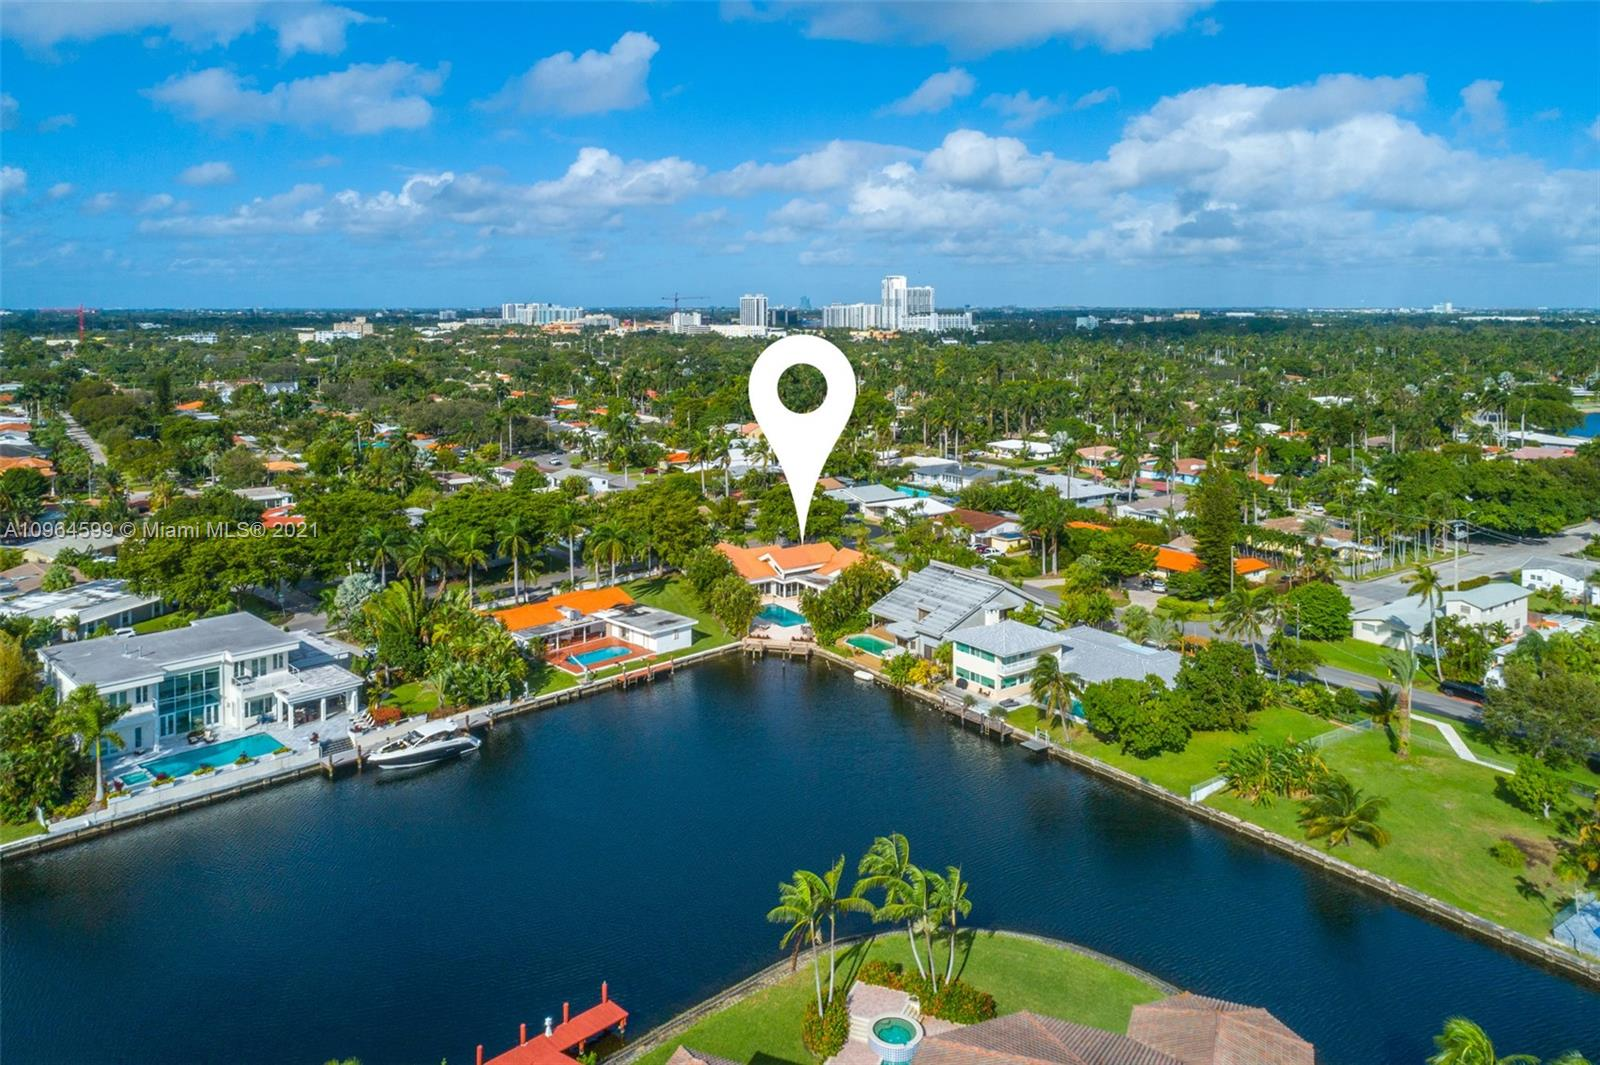 Hollywood waterfront estate overlooking wide open southeast water views. This unique one-story corner property is the essence of indoor/outdoor South Florida living. Open living areas invites impromptu gatherings year-round.  Recently remodeled with a new chef's kitchen with top-of-the-line appliances, dining area, wet bar and living room surrounded by water views.  Impact windows and doors throughout with lots of light and a master suite with spa-like master bath. The interior features 4BR/5.5BA + Office and 2 car garage. The outdoor features lush landscaping, heated pool/Jacuzzi, covered terrace, summer kitchen and new dock to accommodate your boat, plus a children's playground out front. Centrally located between Miami and Fort Lauderdale, great opportunity to own a waterfront property.